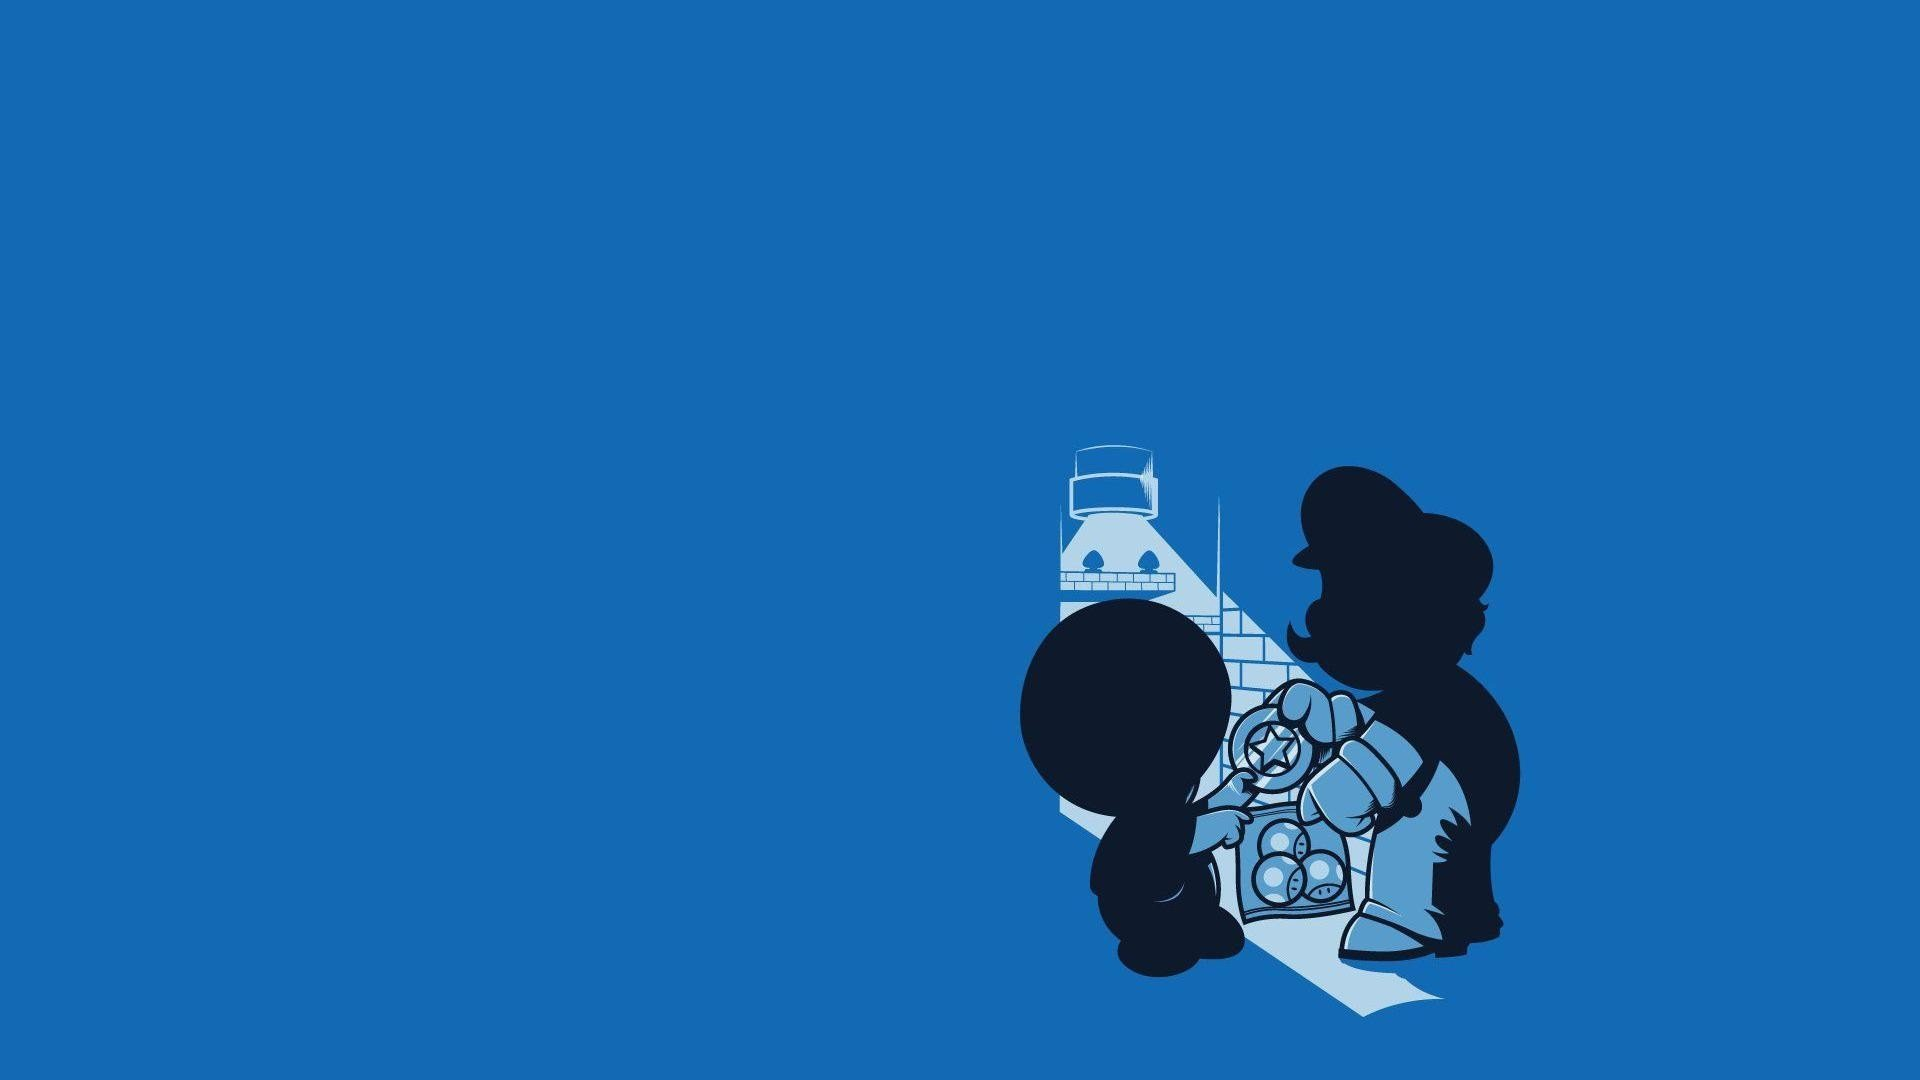 Fma Wallpaper Quotes 1 Super Mario Brothers Hd Wallpapers Background Images